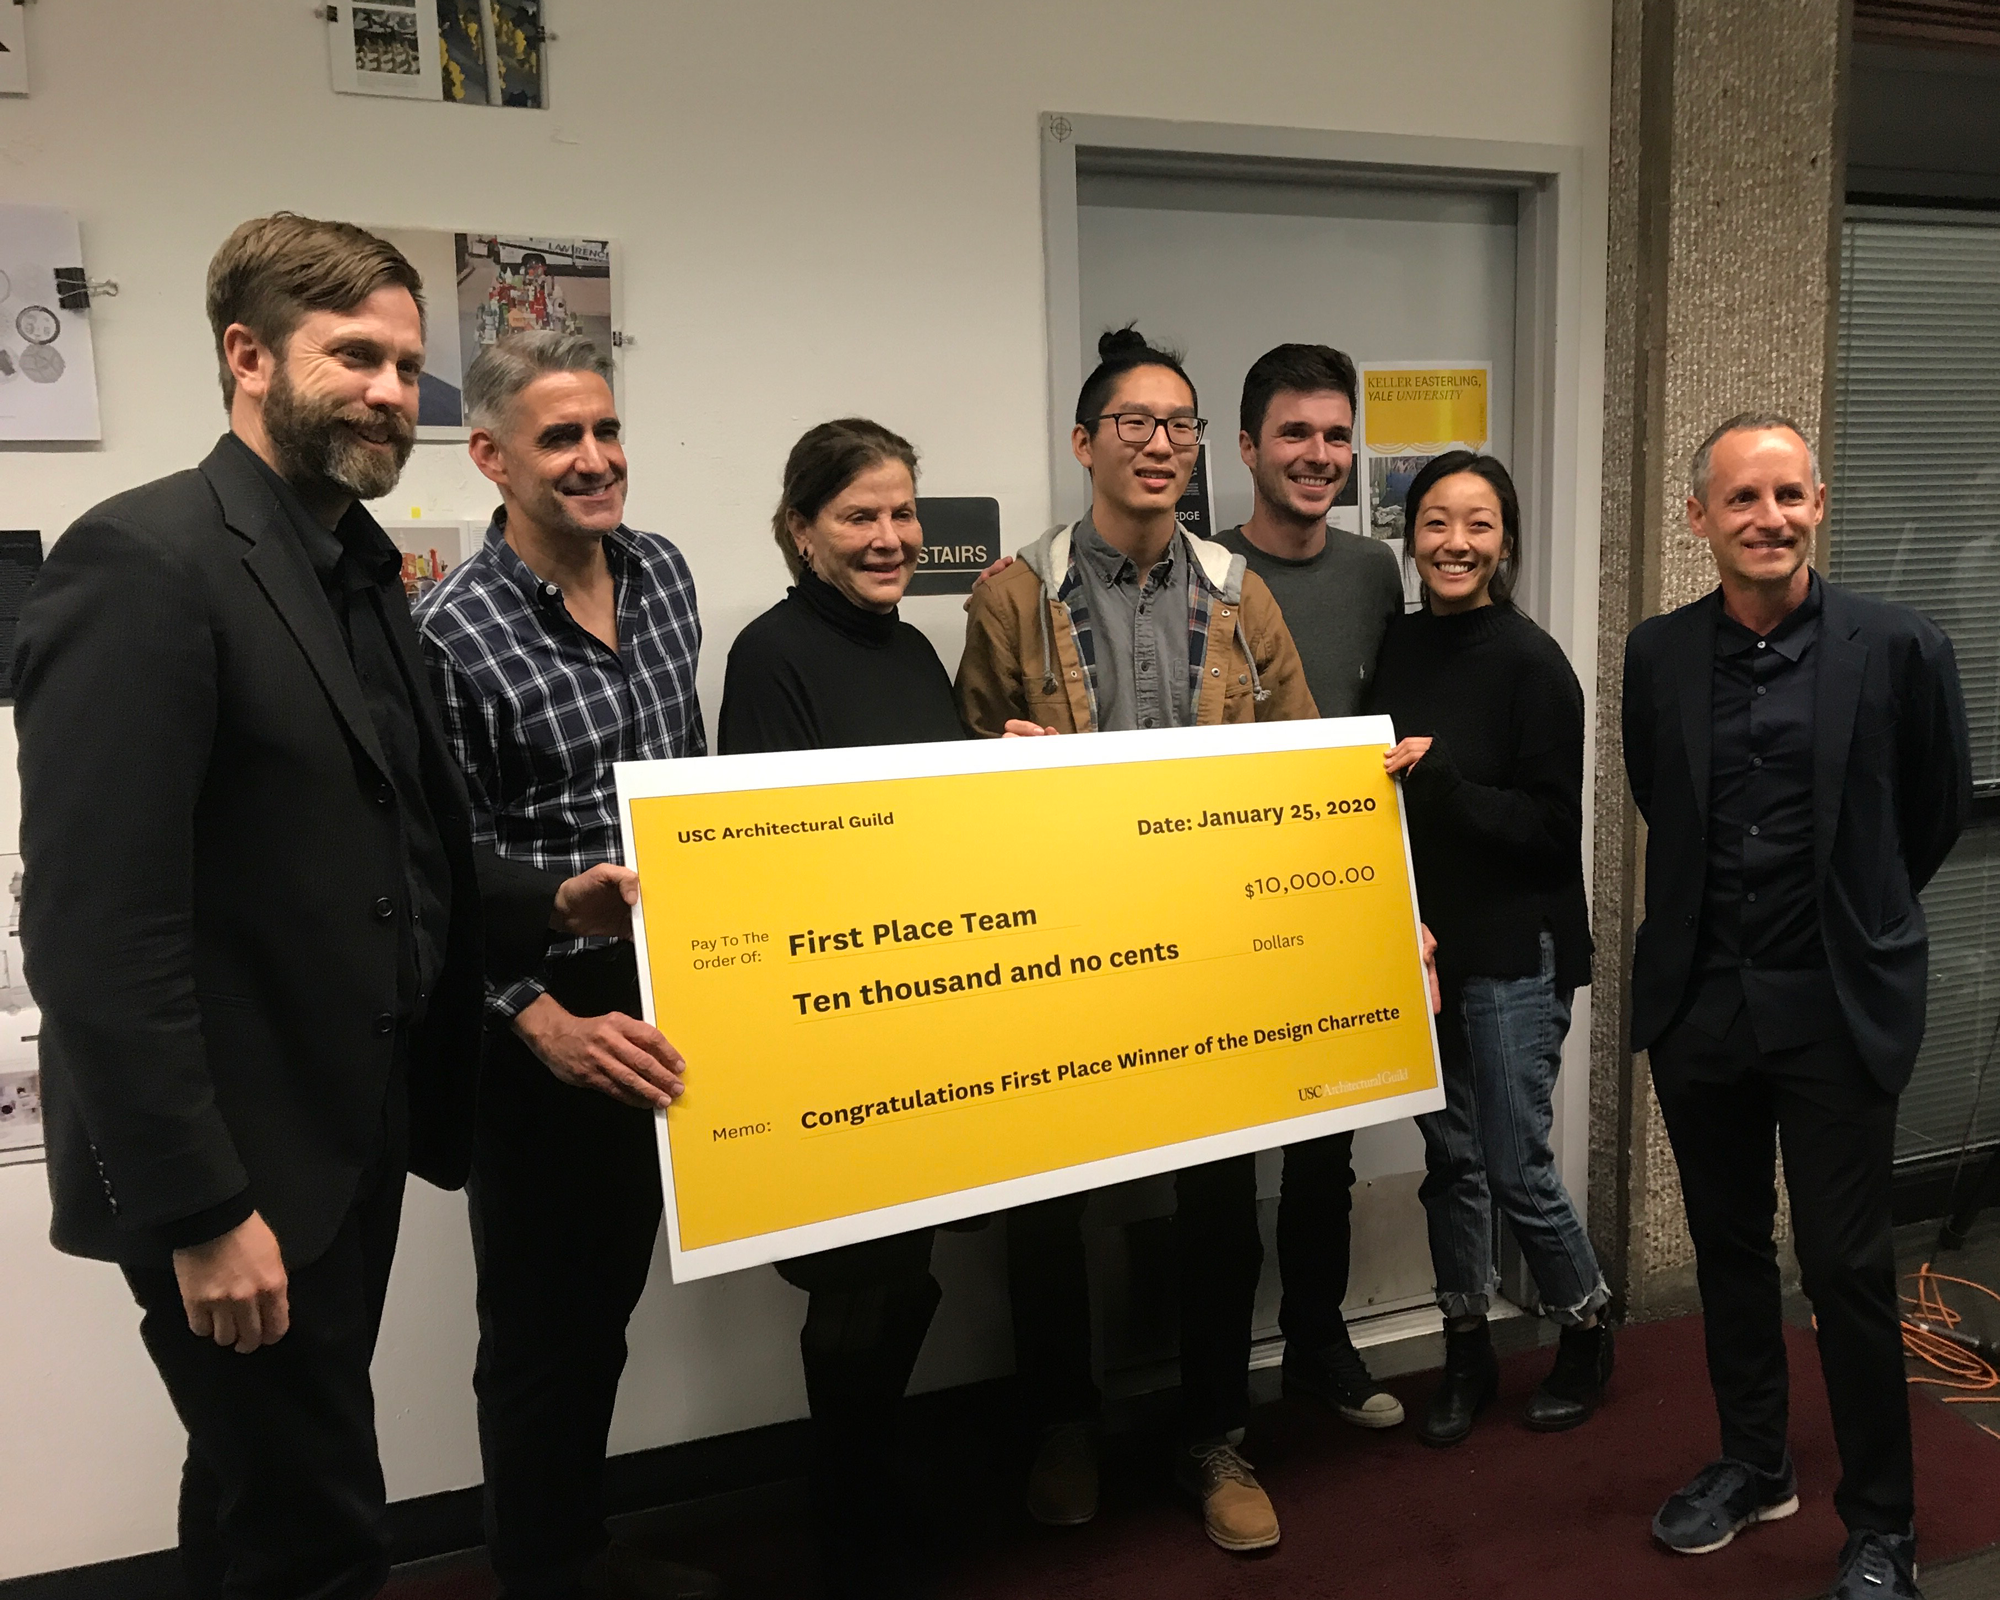 2020 Design Charrette First-place Winners